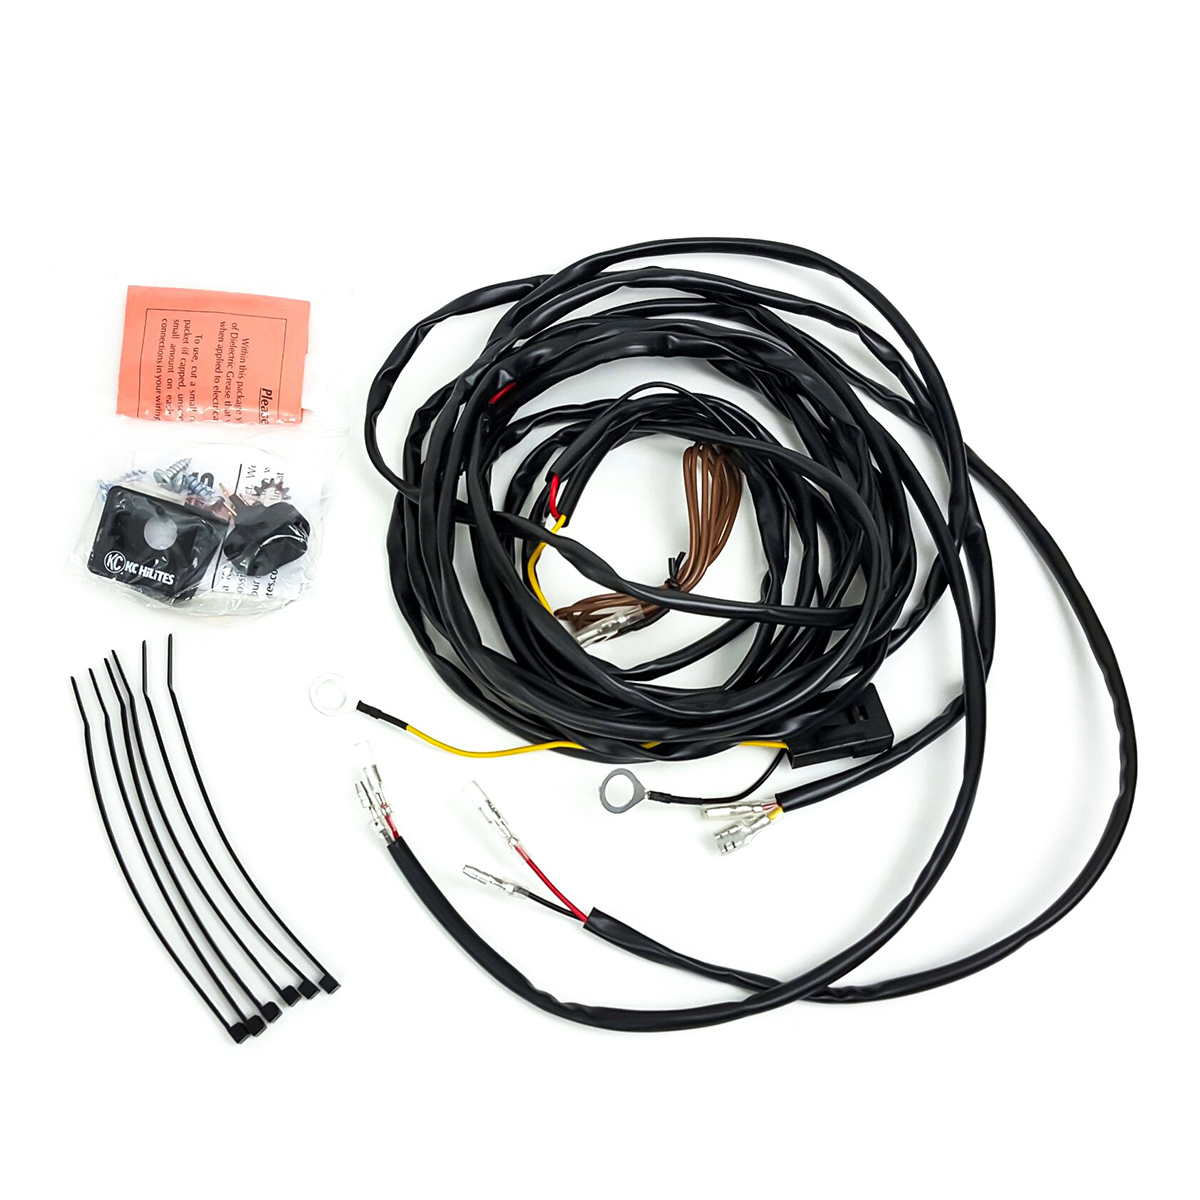 Wire Harness For 2 Cyclone Lights Desolate Motorsports